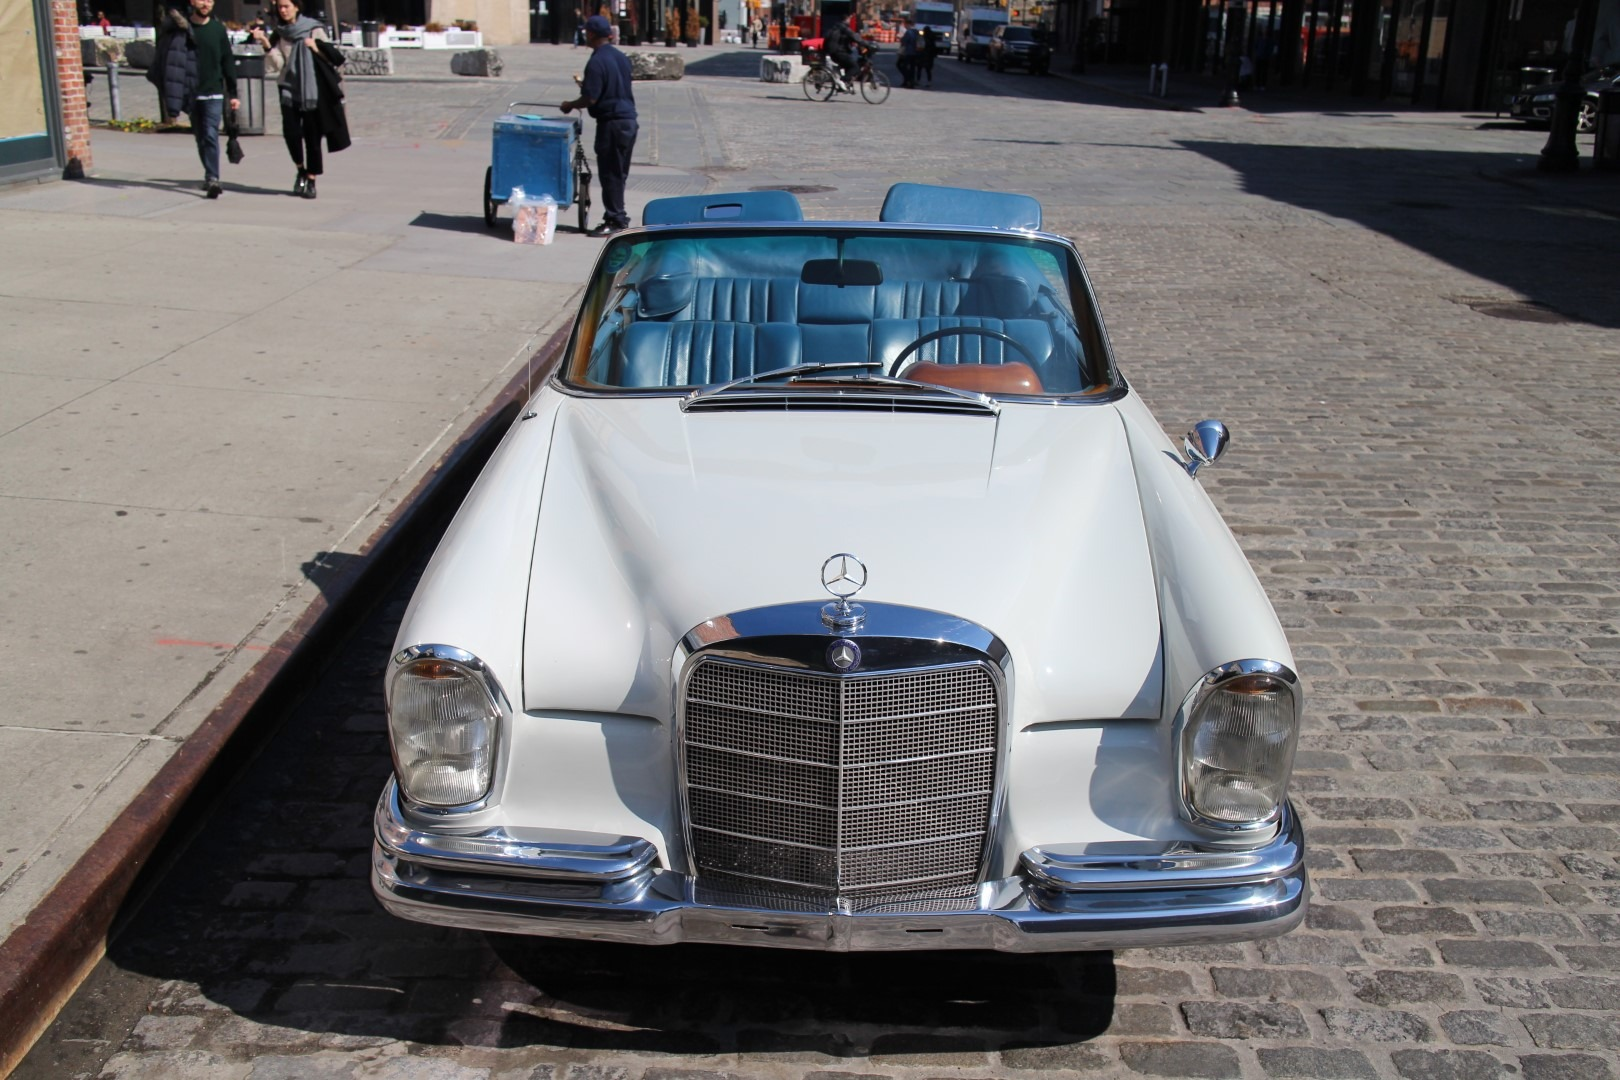 1967 mercedes benz 250 se stock 774 for sale near new york ny ny mercedes benz dealer. Black Bedroom Furniture Sets. Home Design Ideas